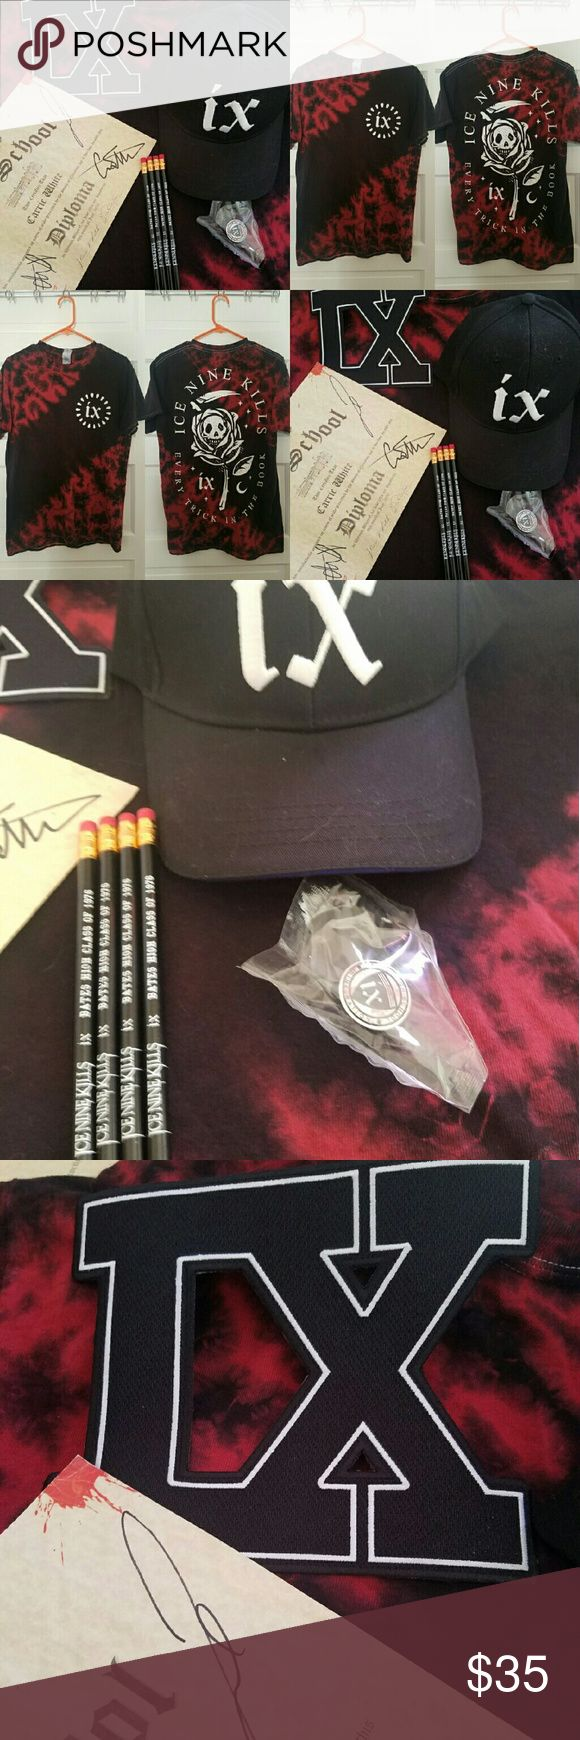 Ice Nine Kills Bundle I've seen them three times this tour VIP so i have tons of extra goodies! The tshirt a roadie gave me for free. It belonged to either one of the guys or another touring band member. Mens size M.  Bundle comes with: 1 Every Trick in the Book tye die shirt, mens M 1 Letterman patch 1 pin 1 baseball hat 4 pencils And a diploma signed by the band! Hot Topic Shirts Tees - Short Sleeve